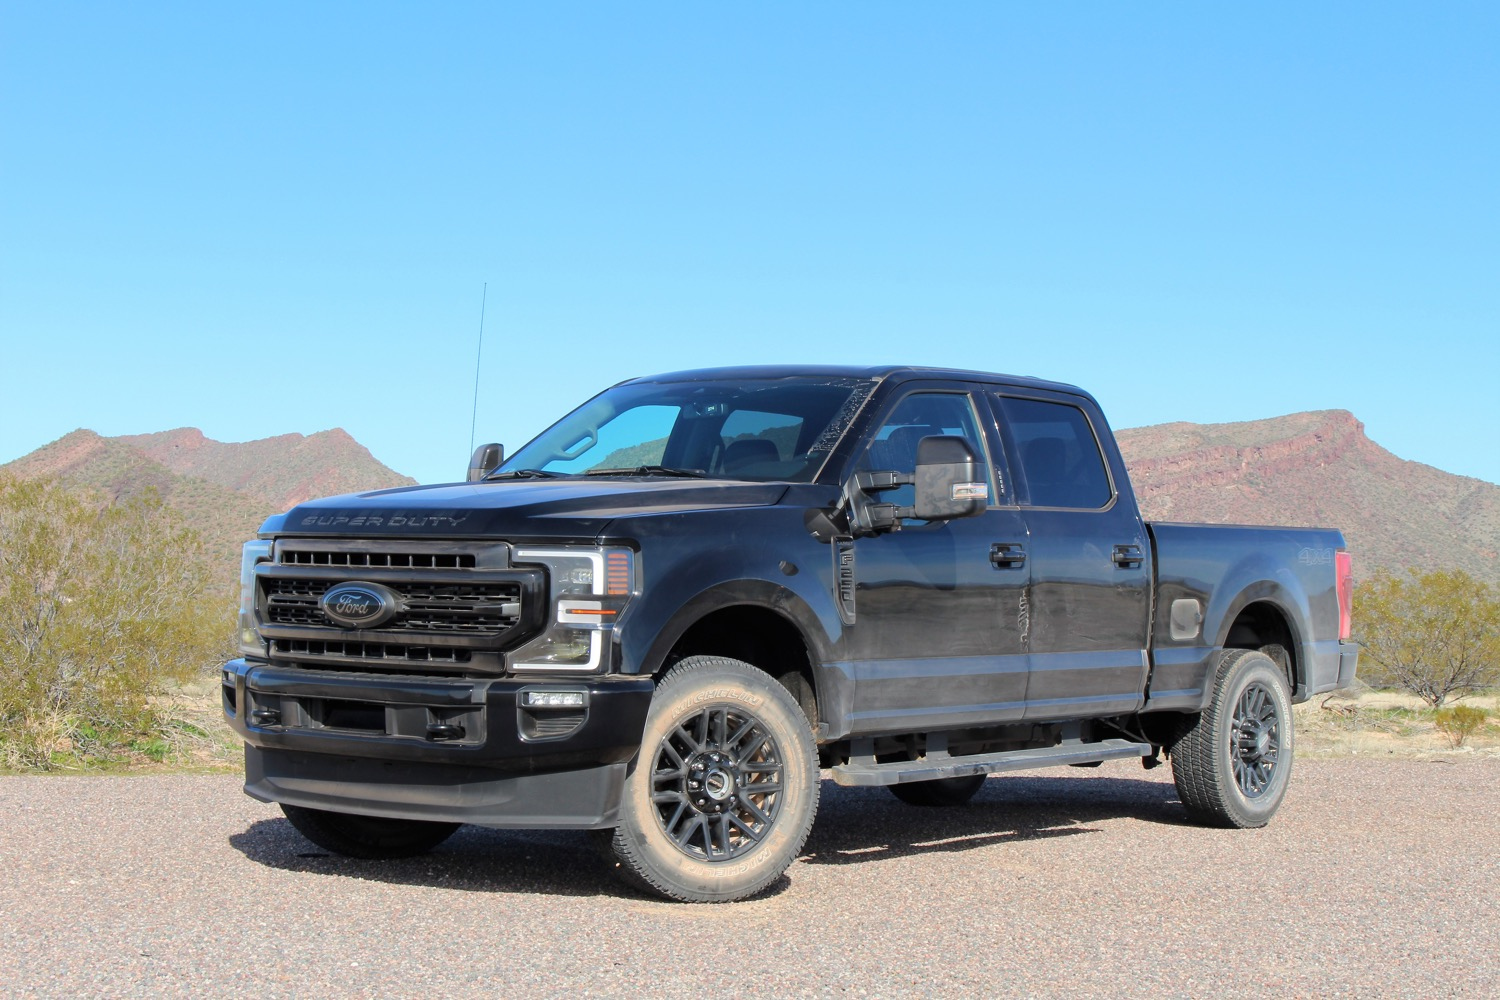 Full 2021 Super Duty Production Details Outline Important Dates